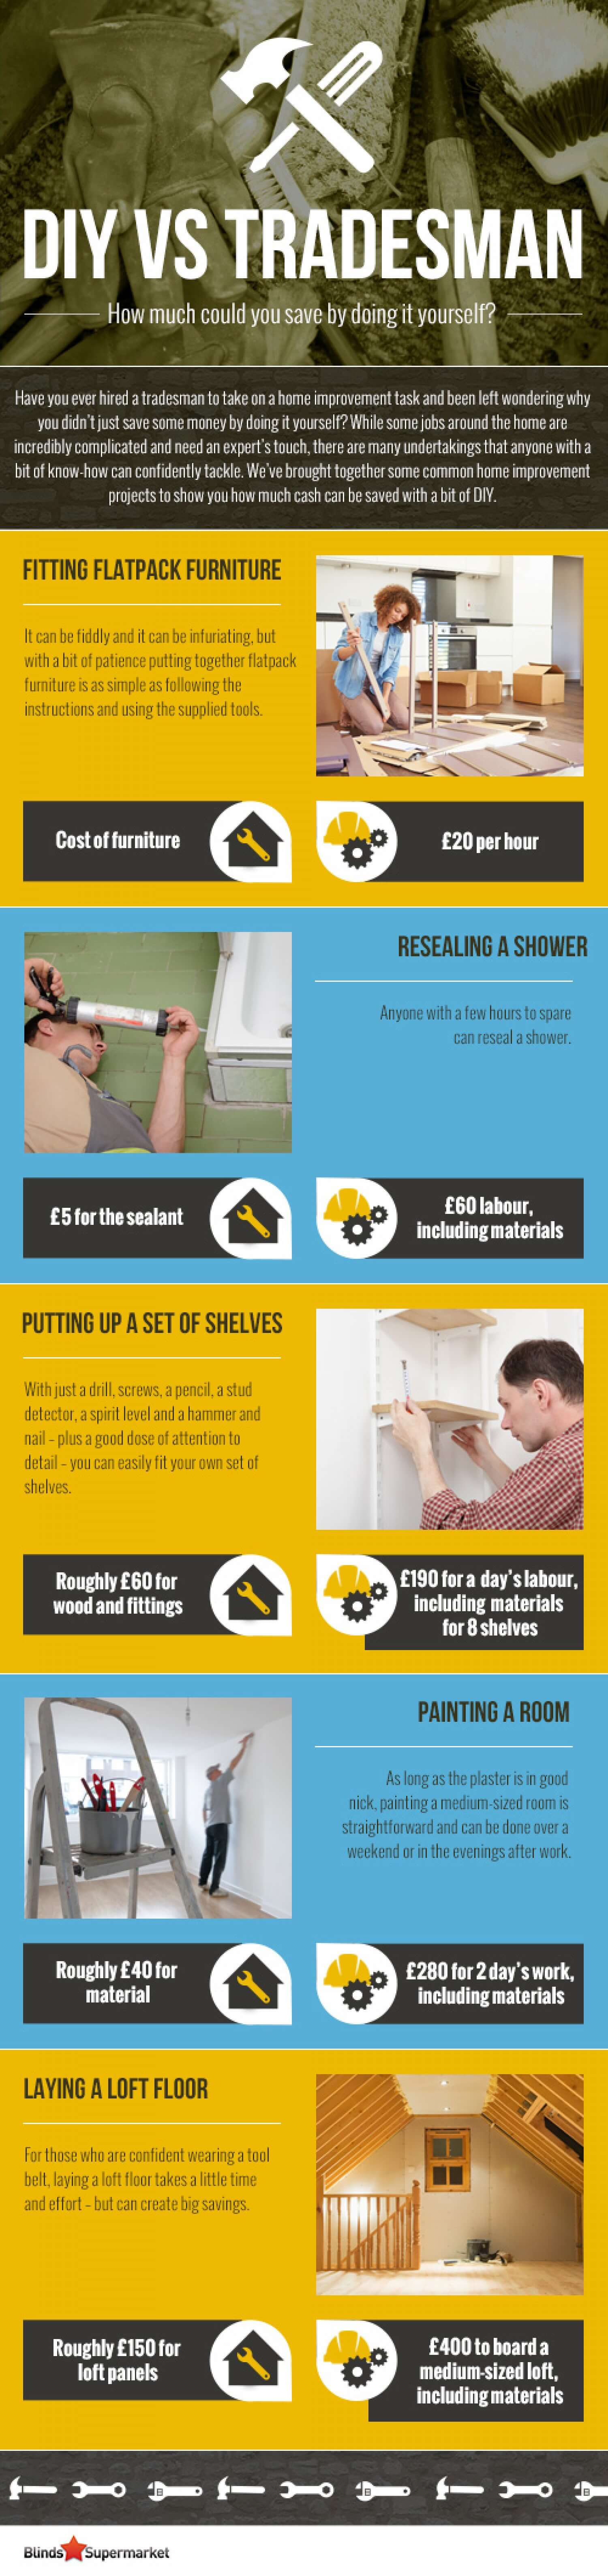 diy-vs-tradesman-how-much-could-you-save-by-doing-it-yourself-tips-tipsographic